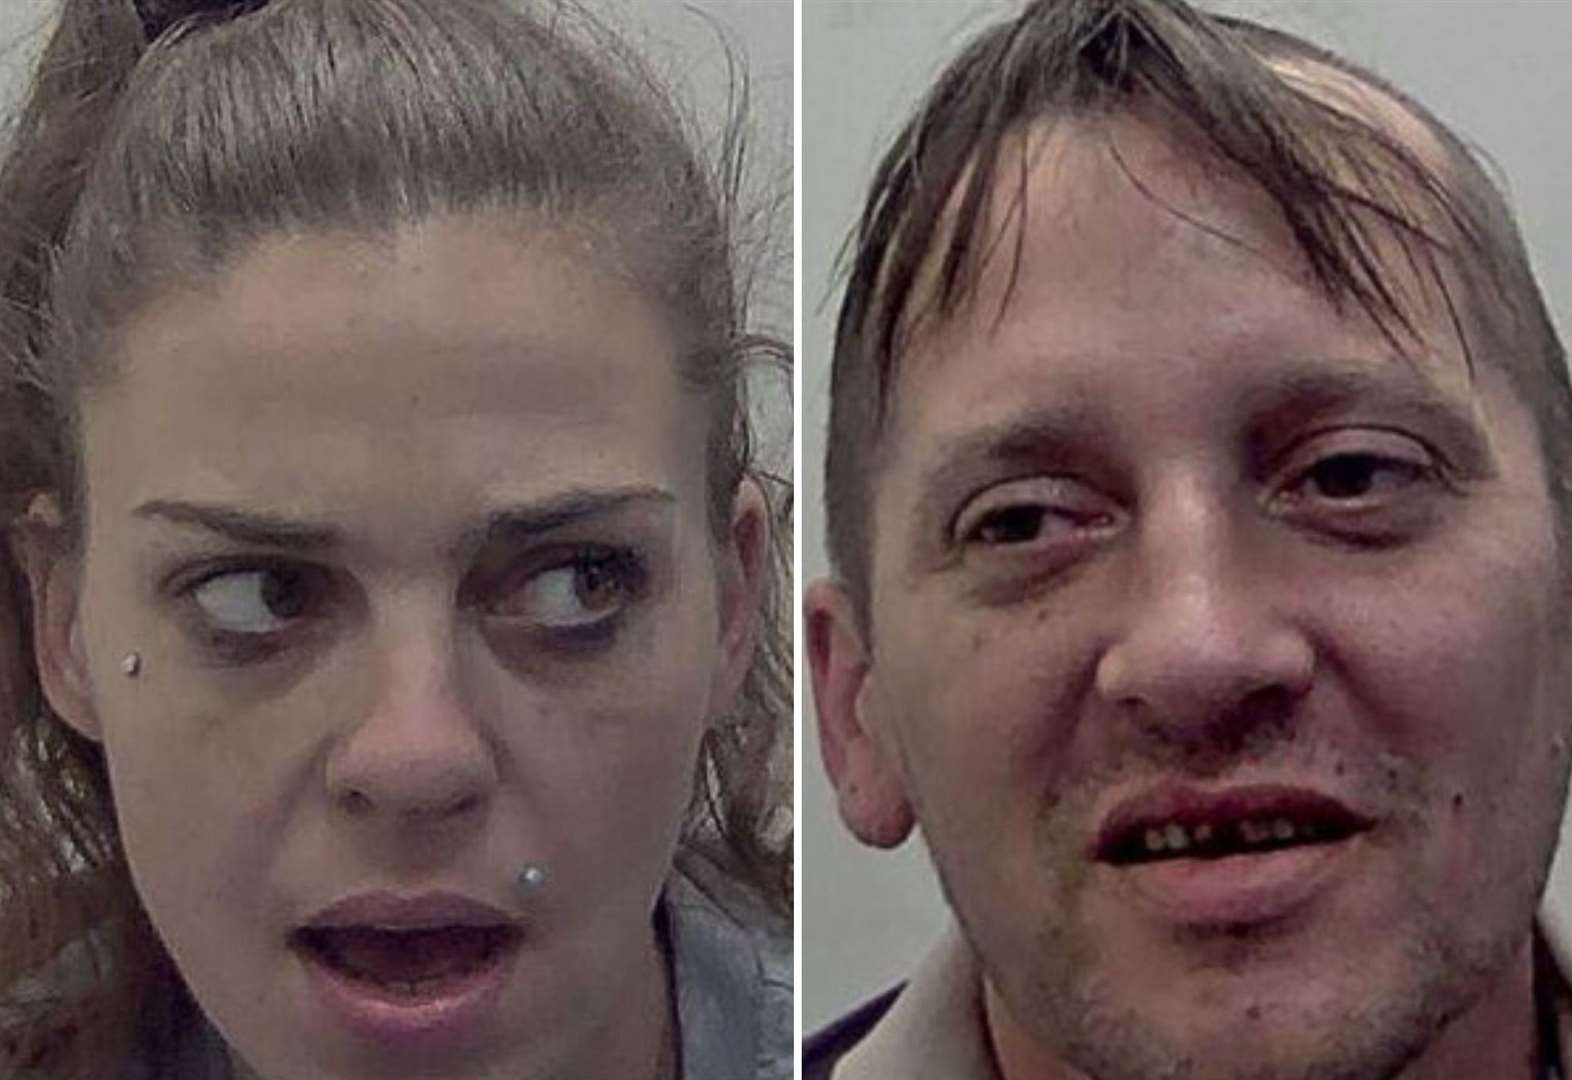 Knifepoint sex sting couple pictured